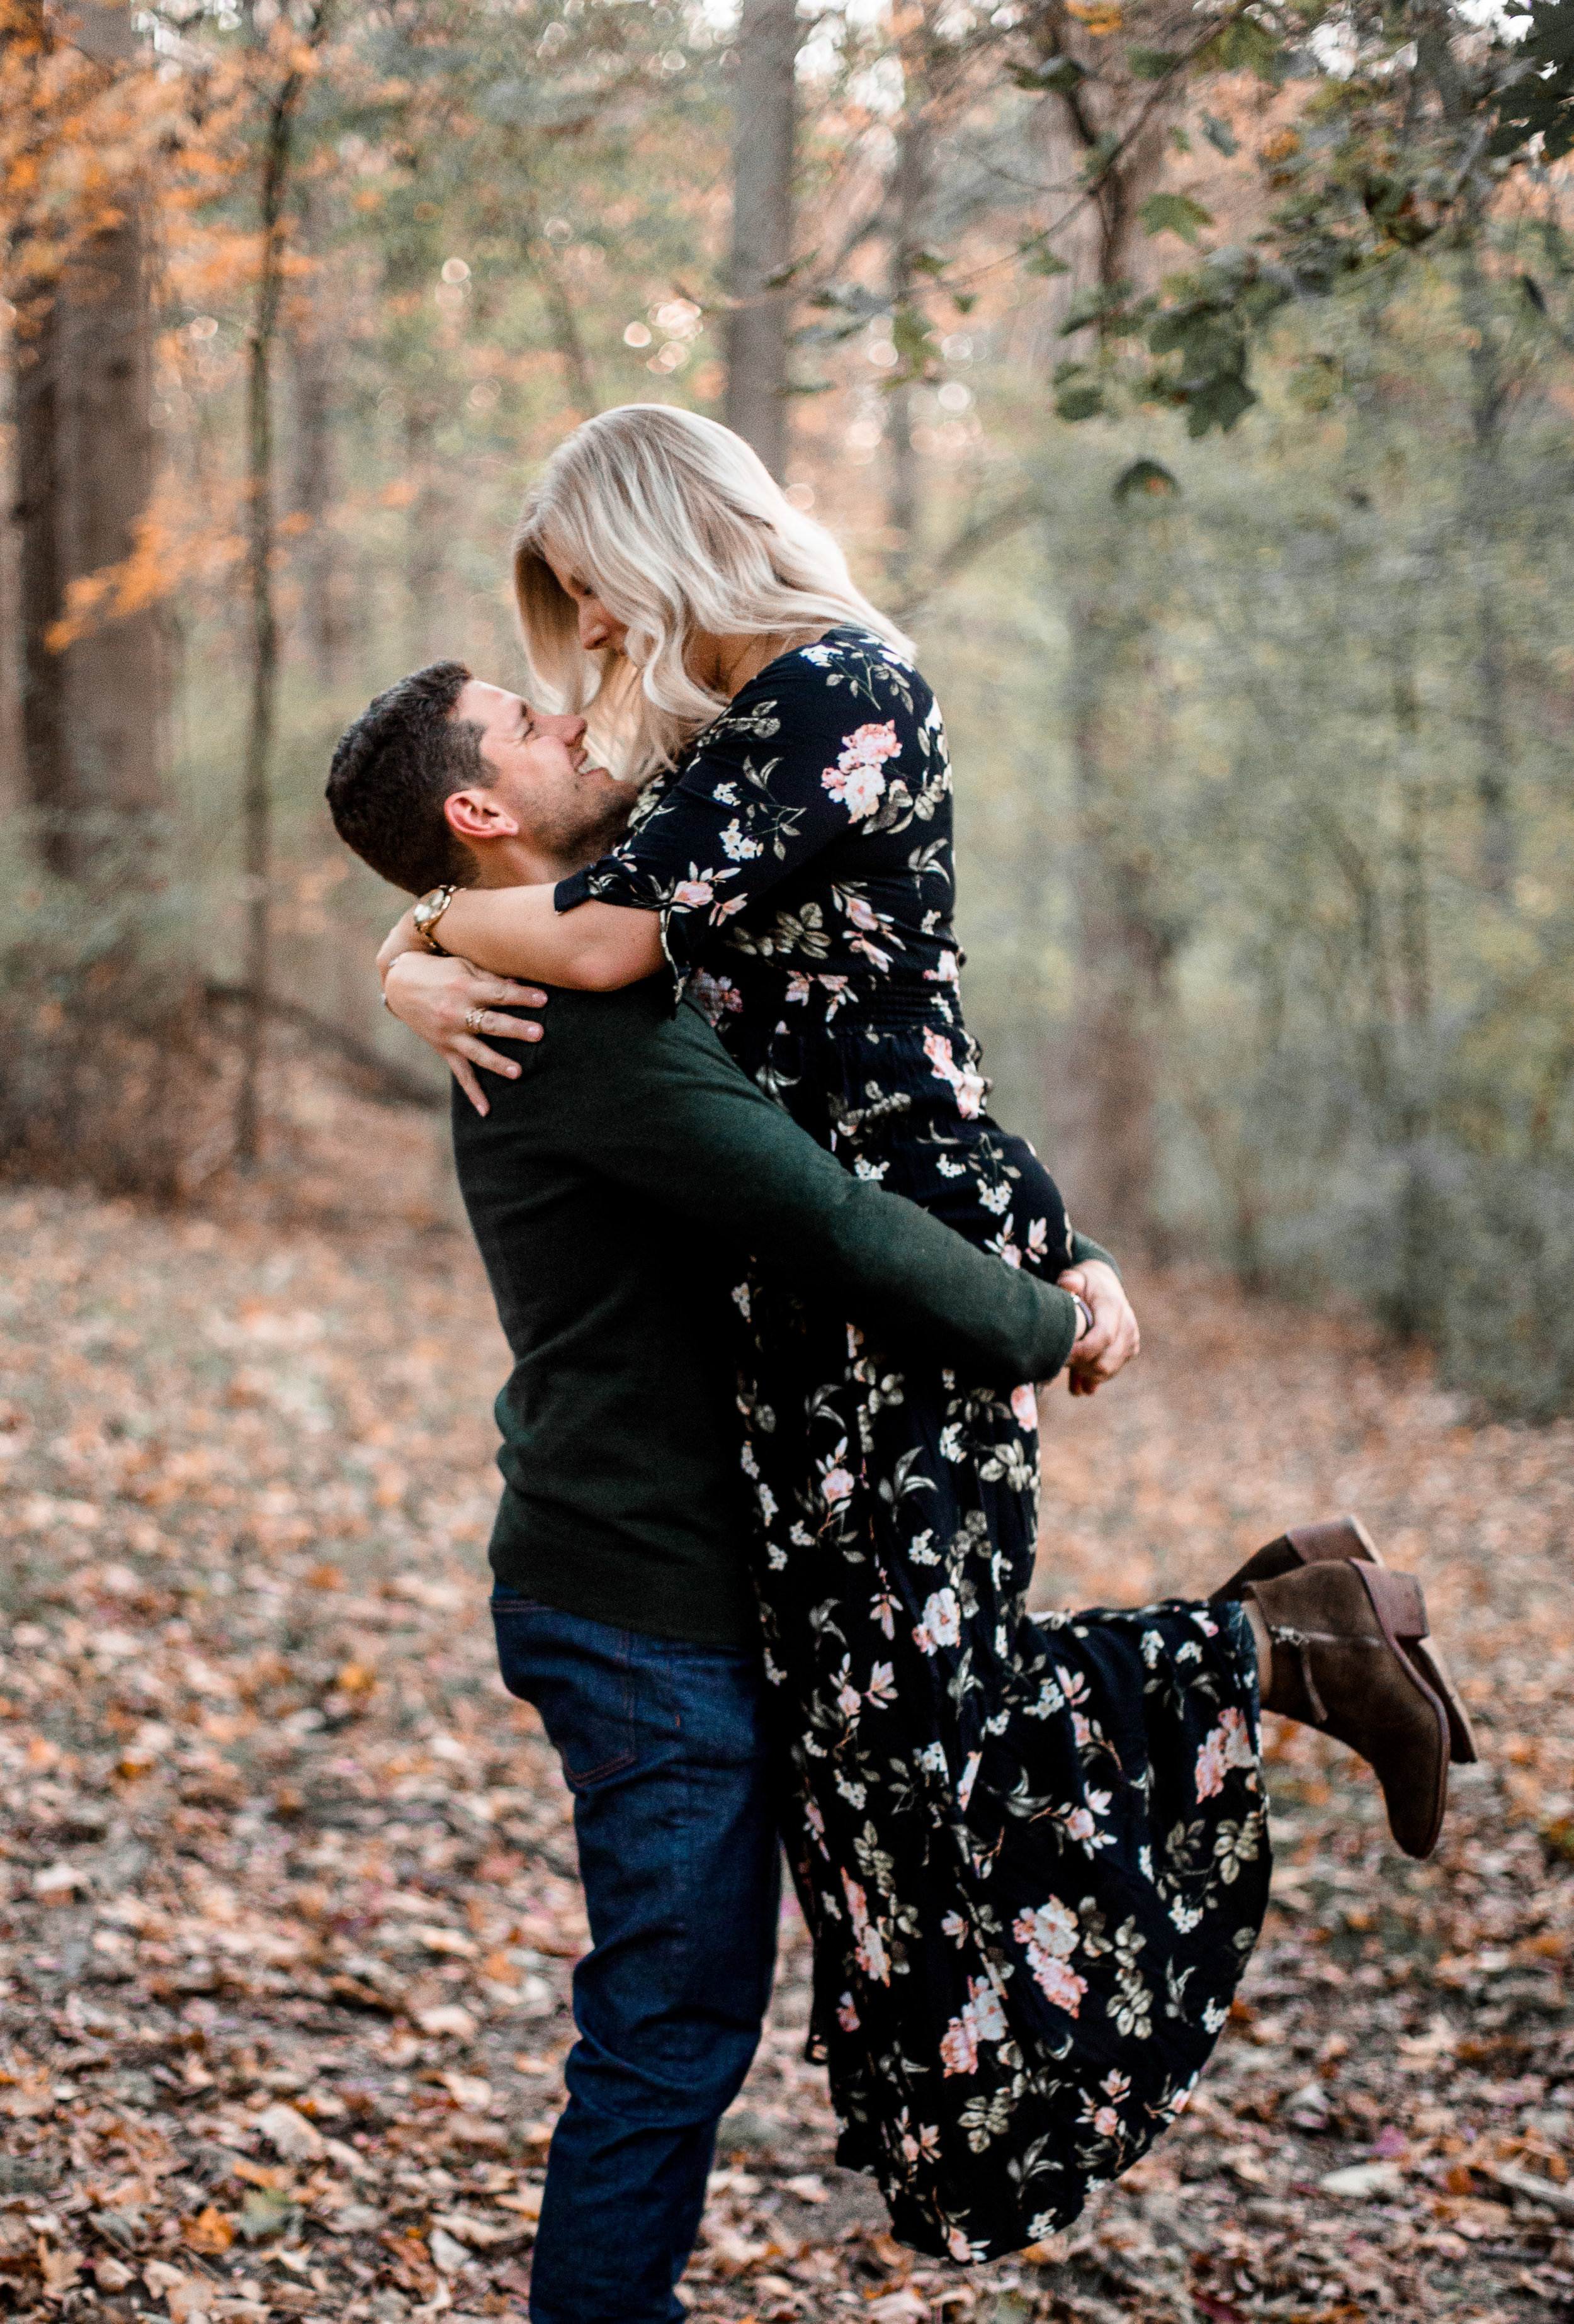 nicole-daacke-photography-carefree-bohemian-lancaster-pa-pennsylvania-engagement-photos-engagement-session-golden-sunset-adventure-session-in-lancaster-pa-lancaster-pa-outdoor-wedding-photographer-48.jpg